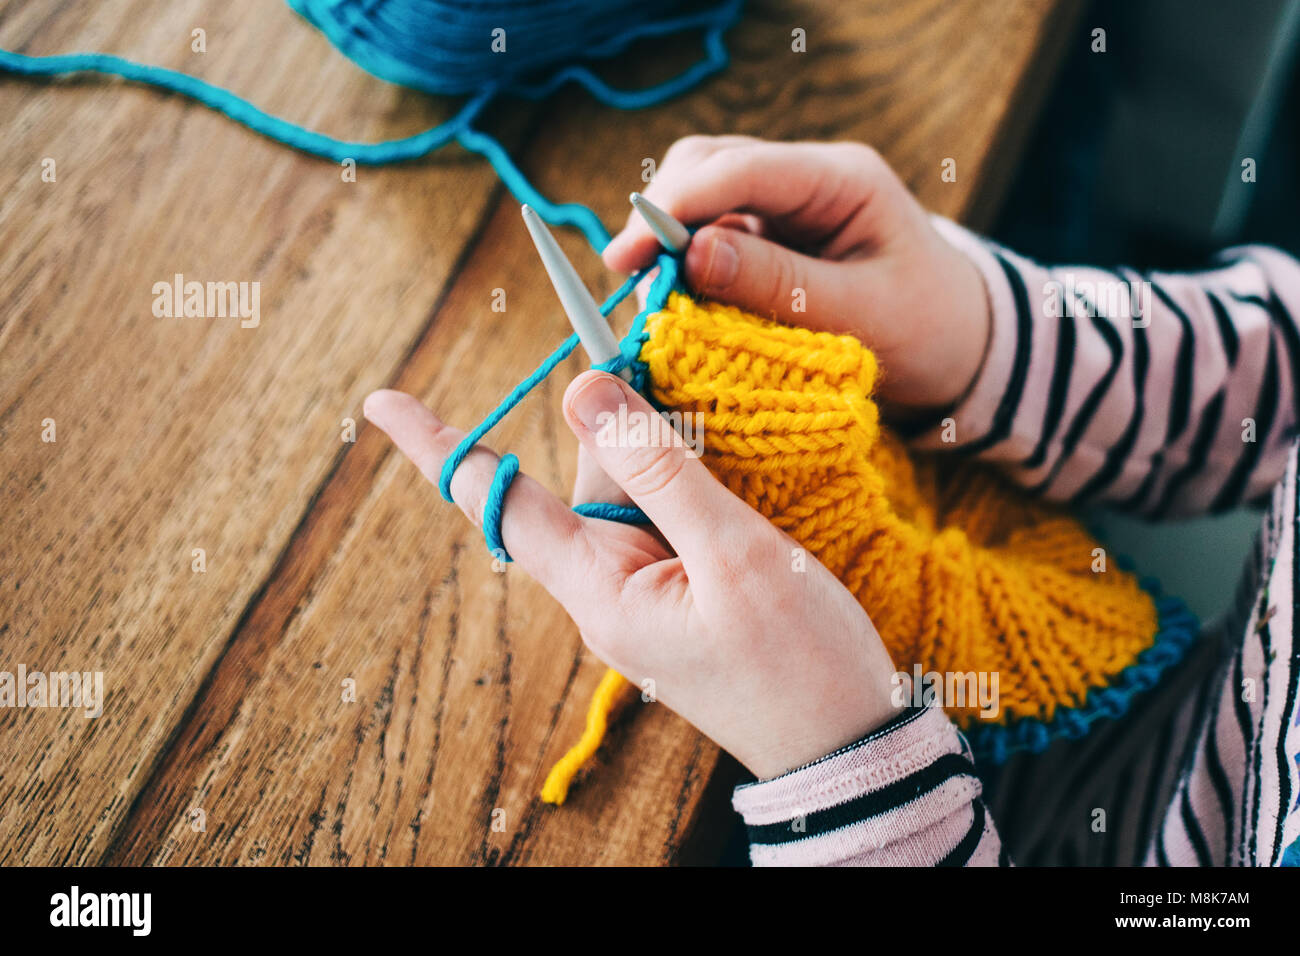 Young girl knitting a circle scarf with yellow and blue coloured yarn. Sitting at the wooden table, close up of - Stock Image